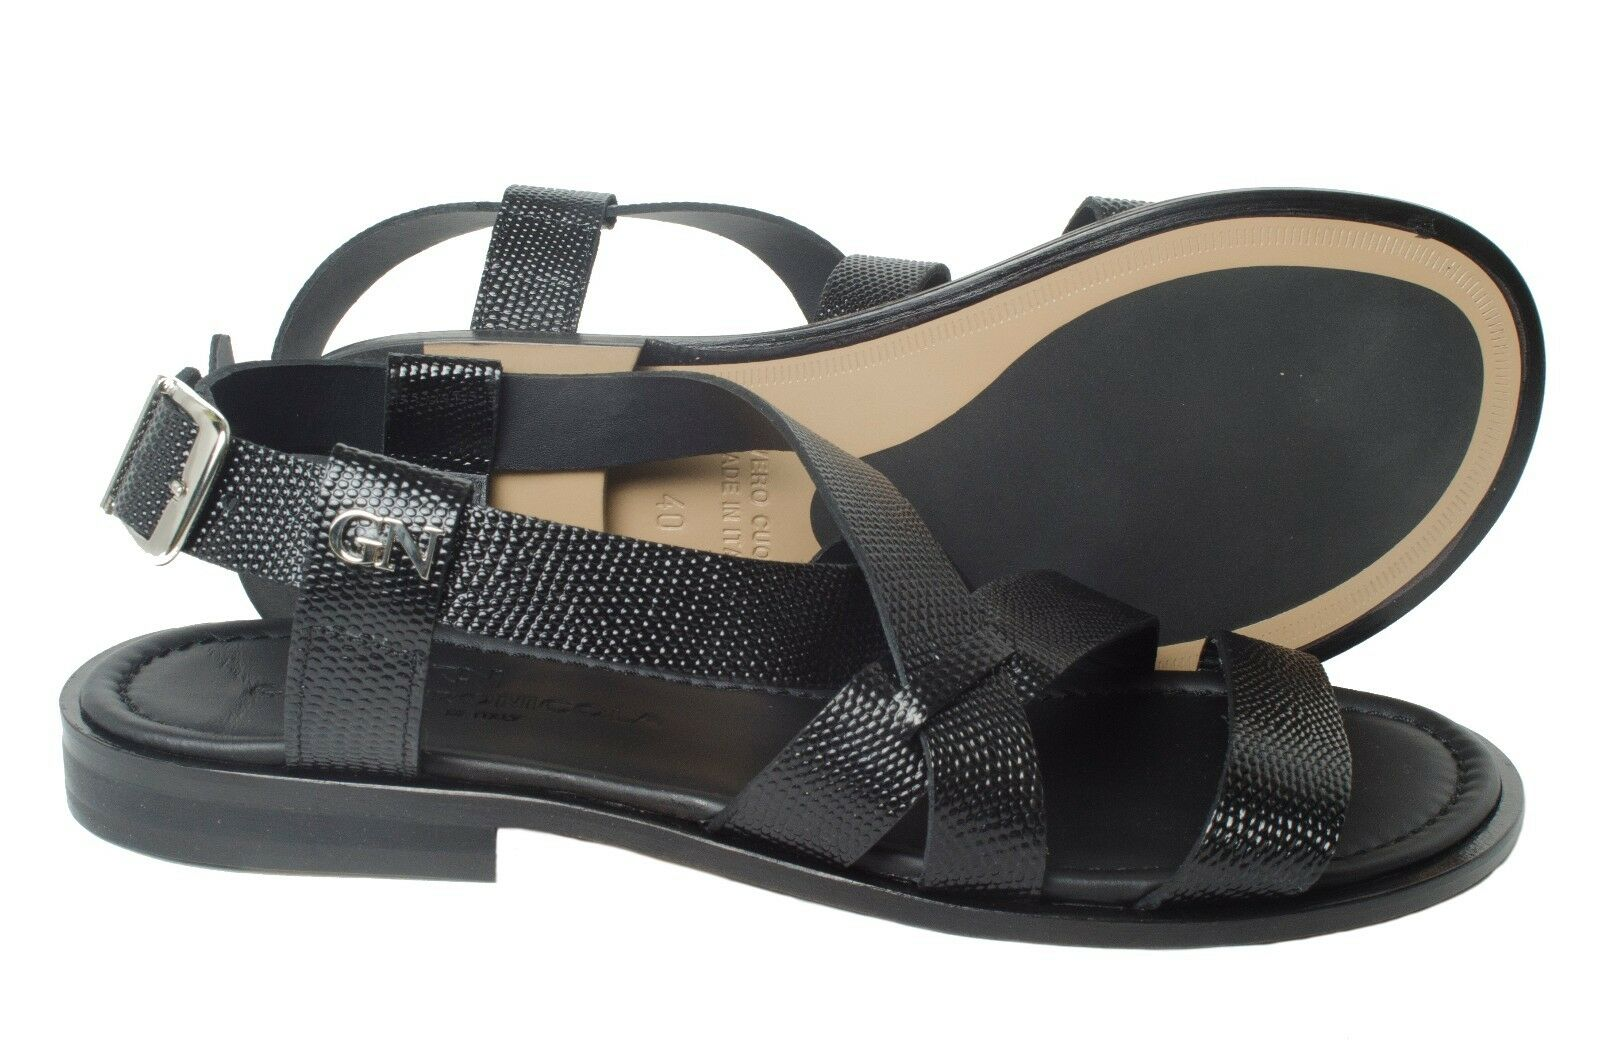 GIAMPIERONICOLA 3720 3720 3720 Italian schwarz lizard printed leather sandals w back strap cd743e